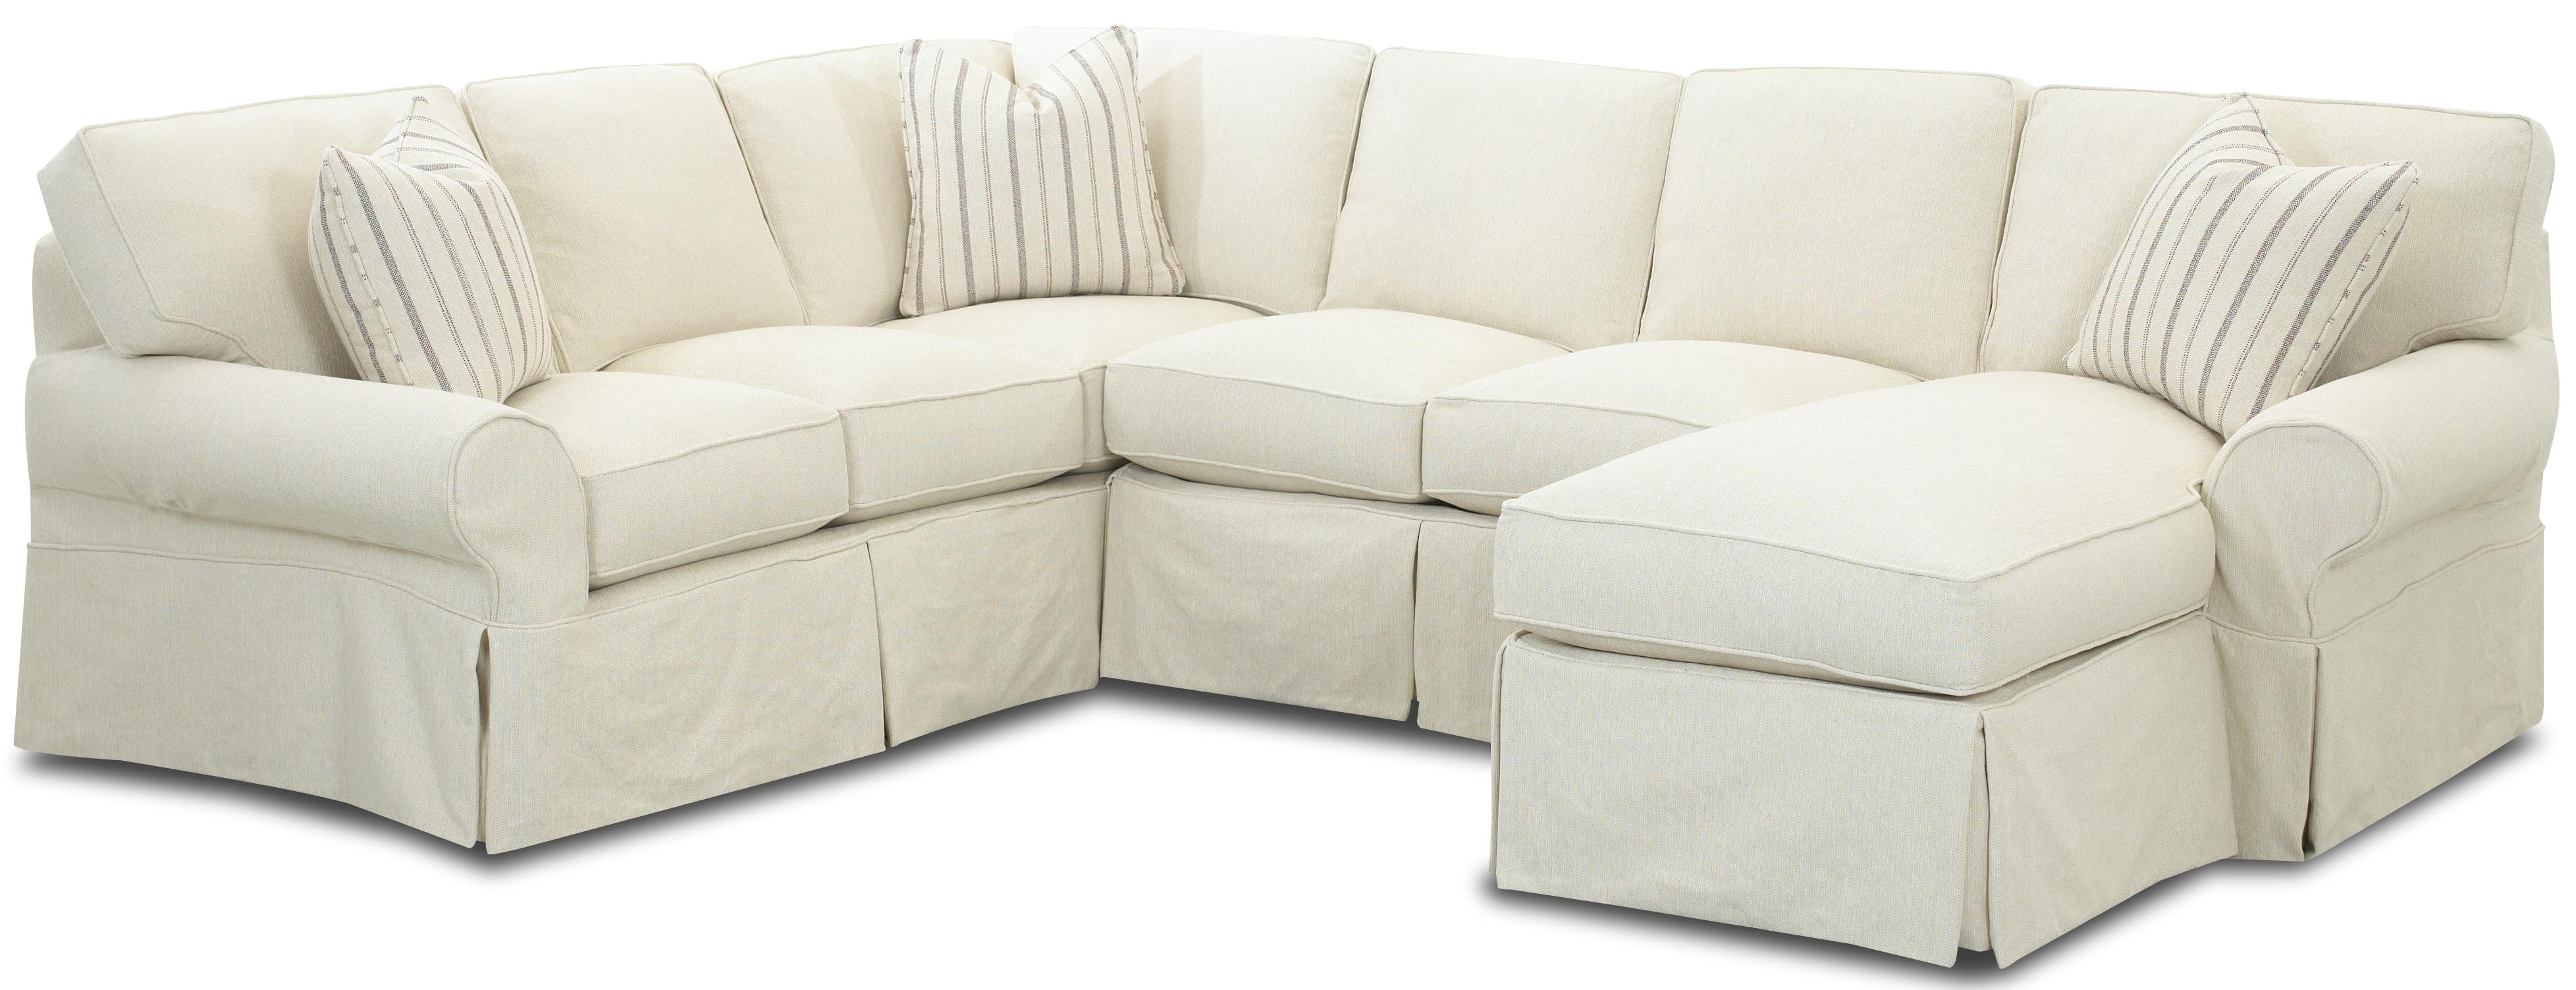 Featured Photo of Slipcovers For Sectional Sofa With Chaise